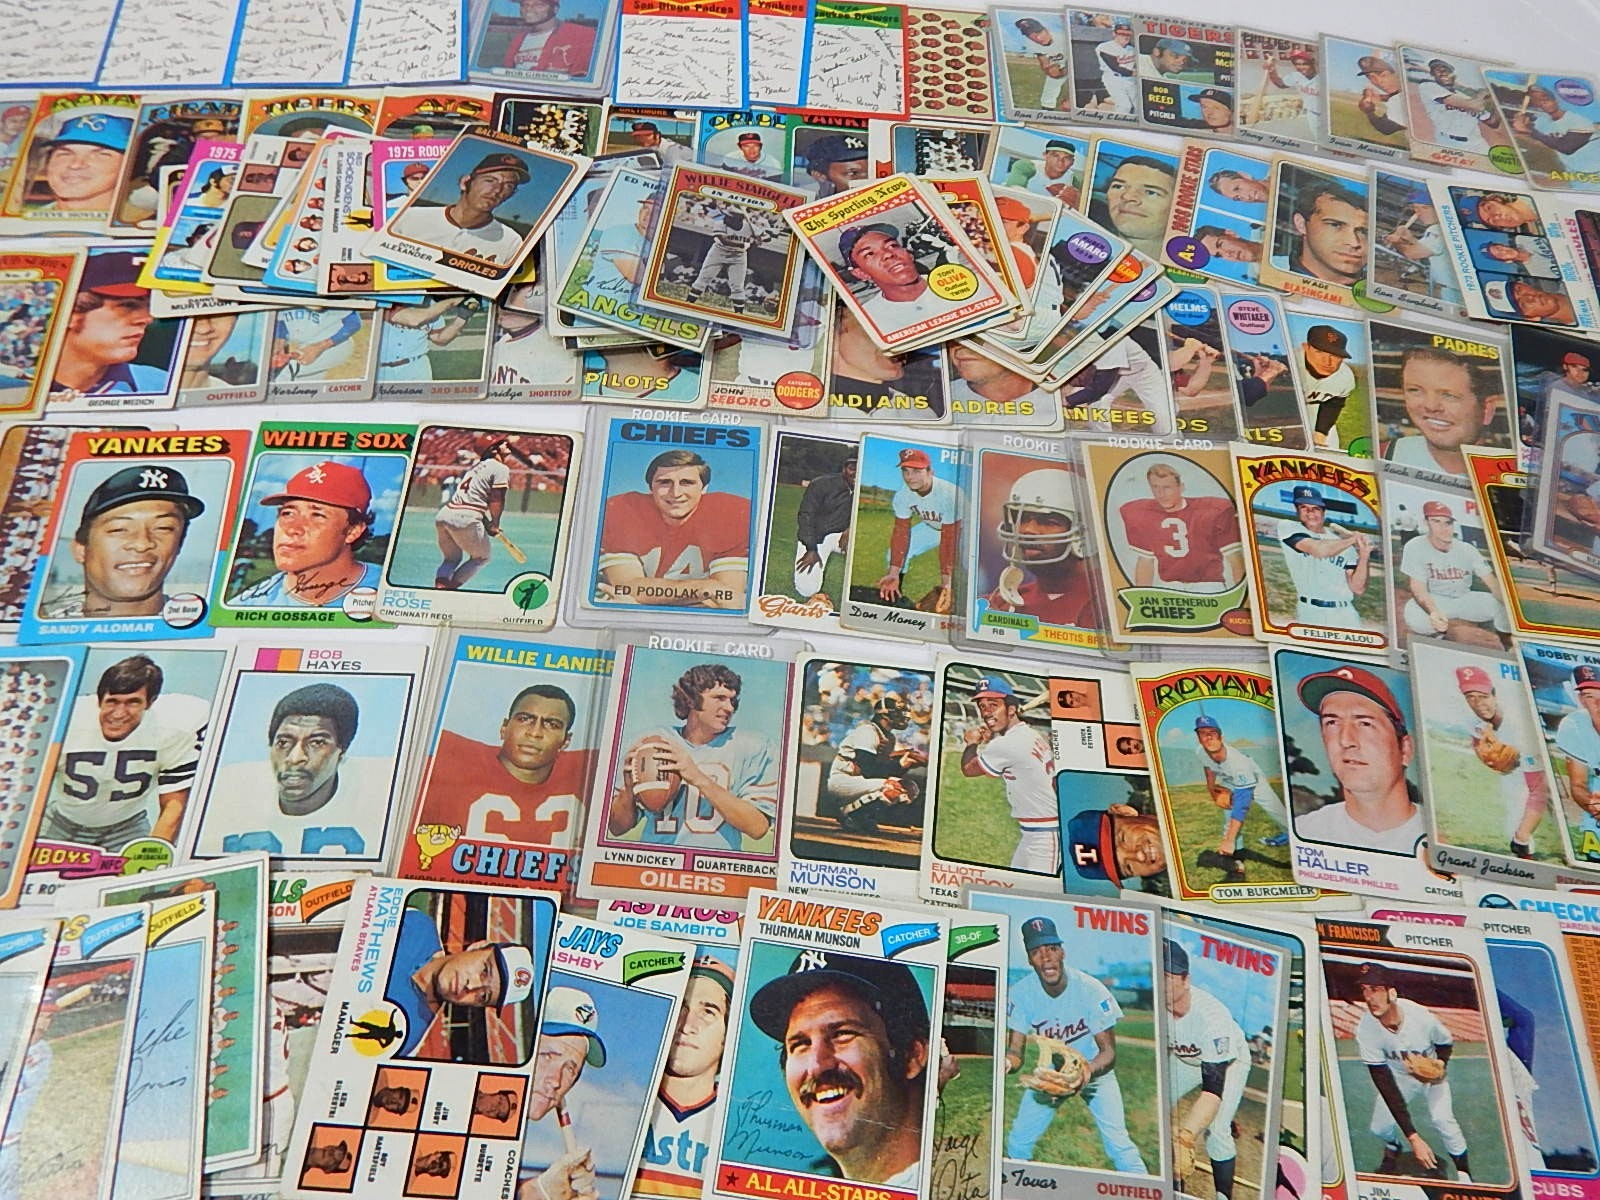 1960s and 1970s Baseball and Football Card Lot - Over 130 Card Count